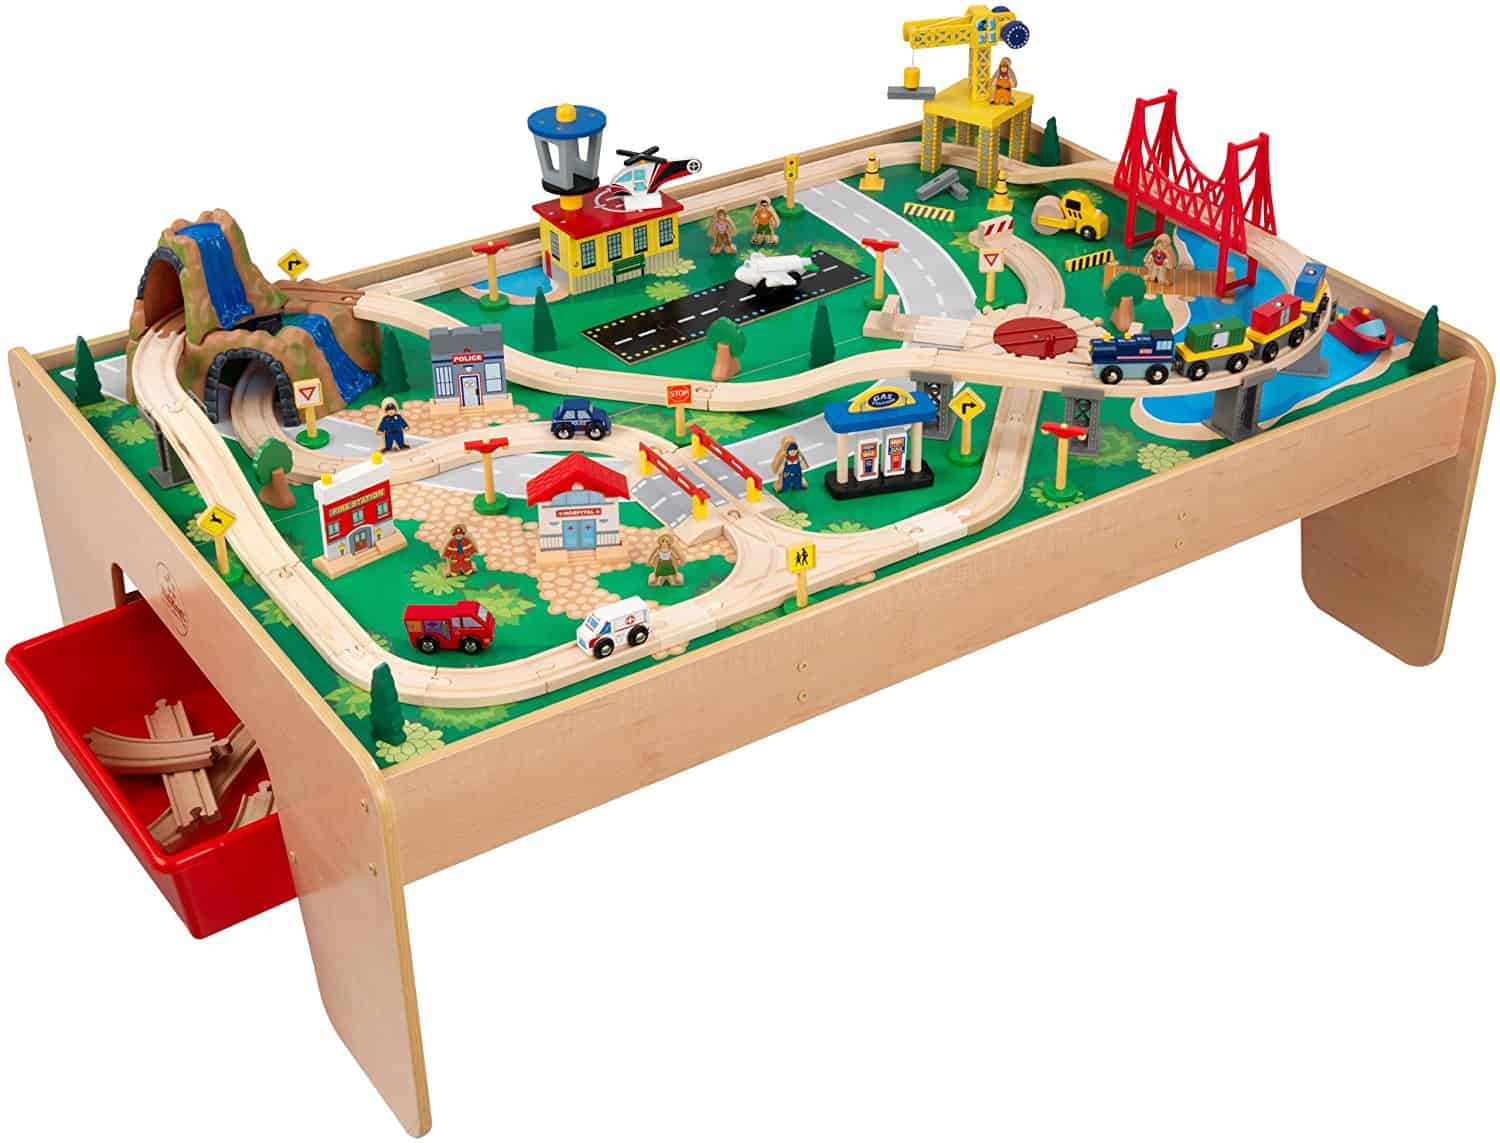 Kidkraft Train Table  sc 1 st  Toy Train Center : toy train set table - pezcame.com